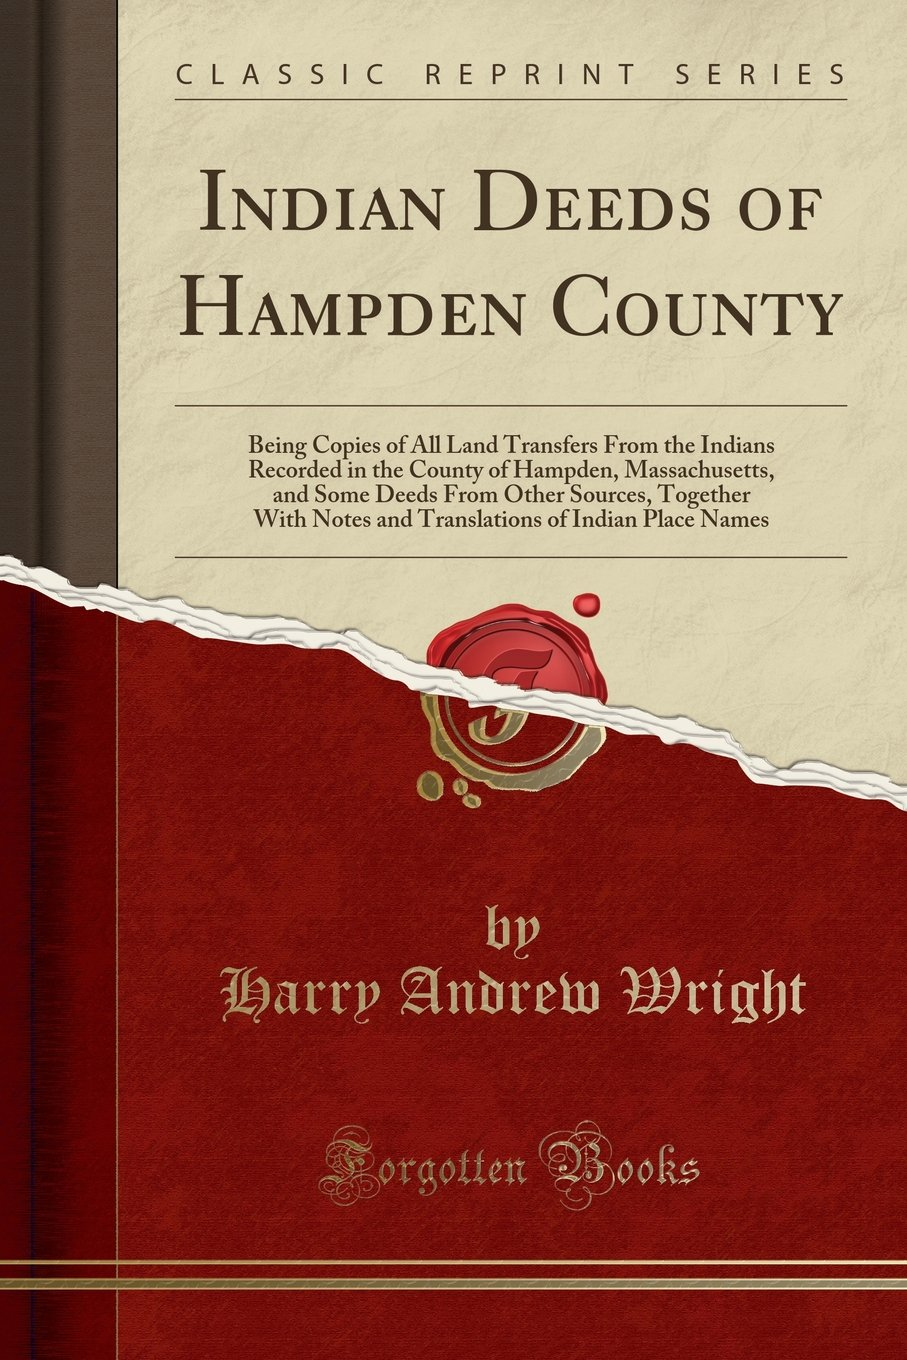 Download Indian Deeds of Hampden County: Being Copies of All Land Transfers From the Indians Recorded in the County of Hampden, Massachusetts, and Some Deeds ... of Indian Place Names (Classic Reprint) ebook